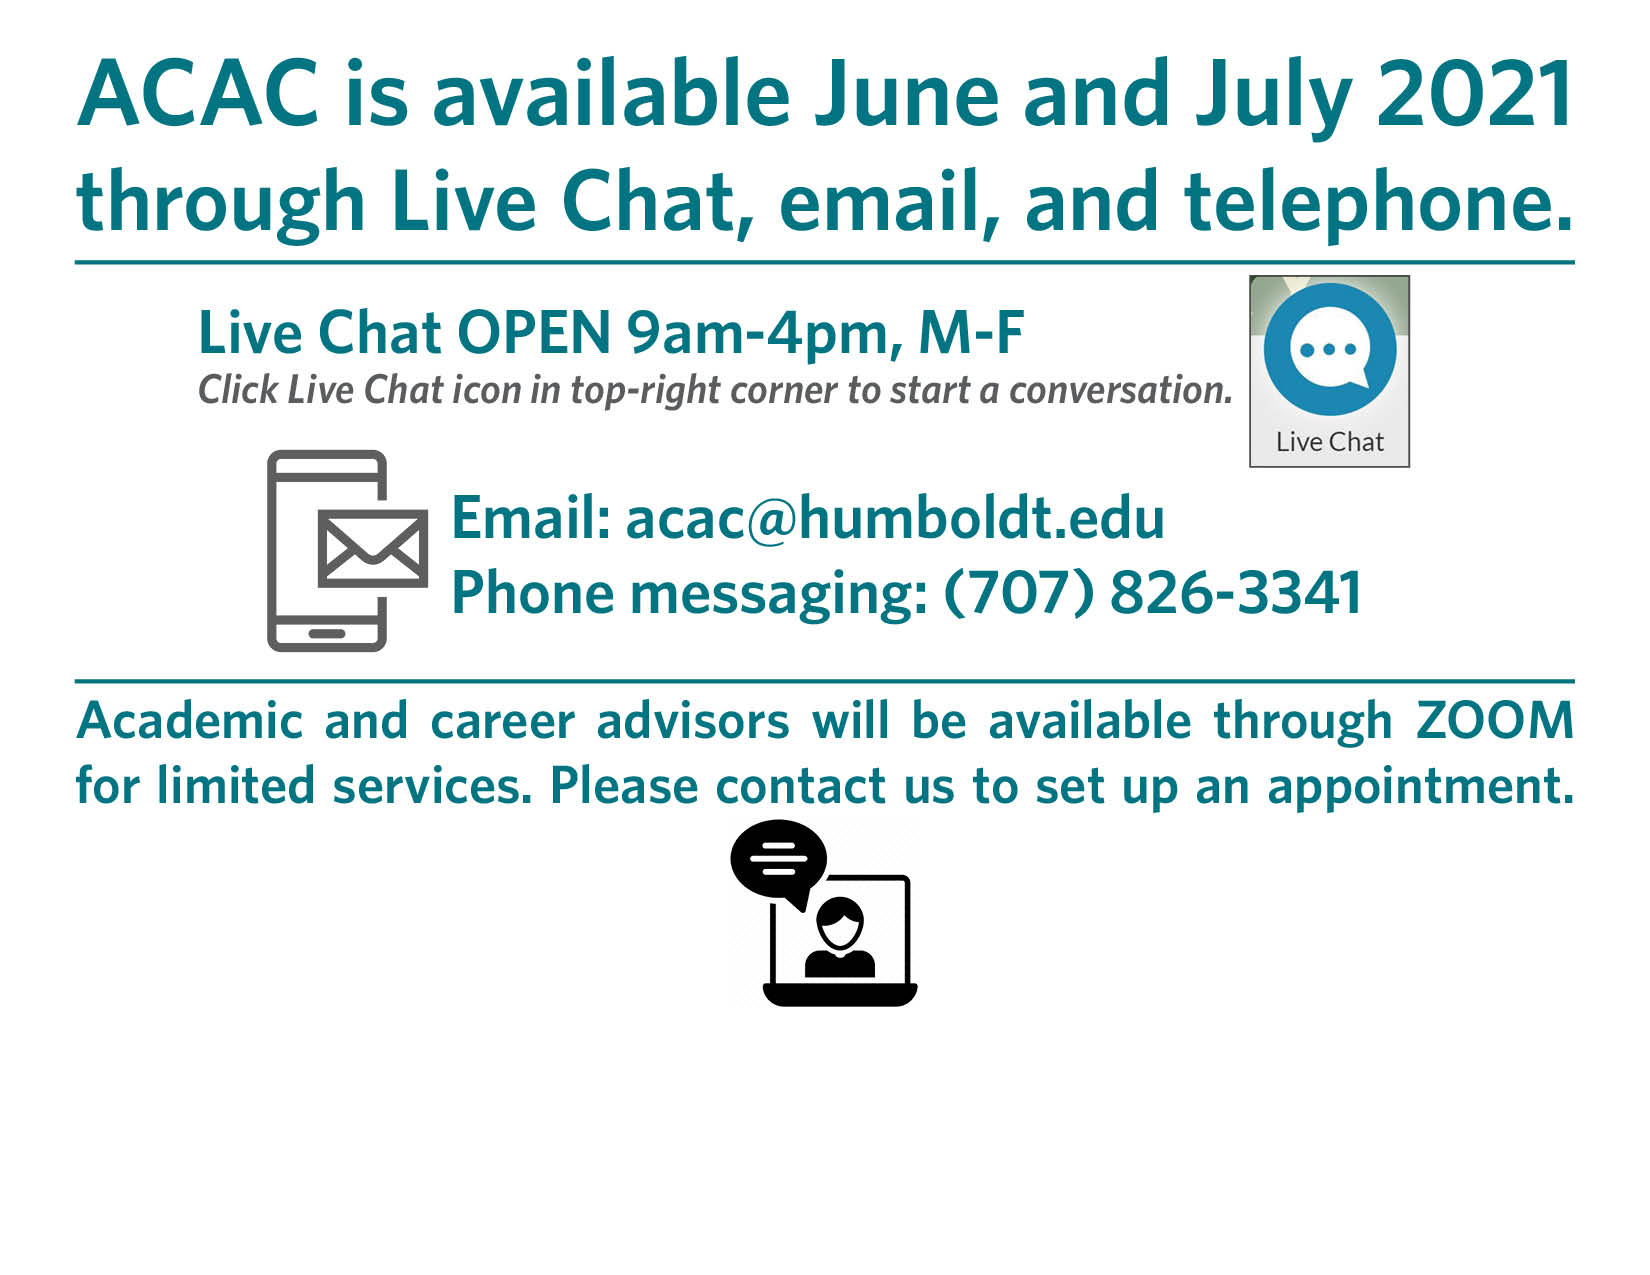 ACAC is available June and July 2021 through Live Chat, email, and telephone. Email: acac@humboldt.edu Phone messaging: (707) 826-3341